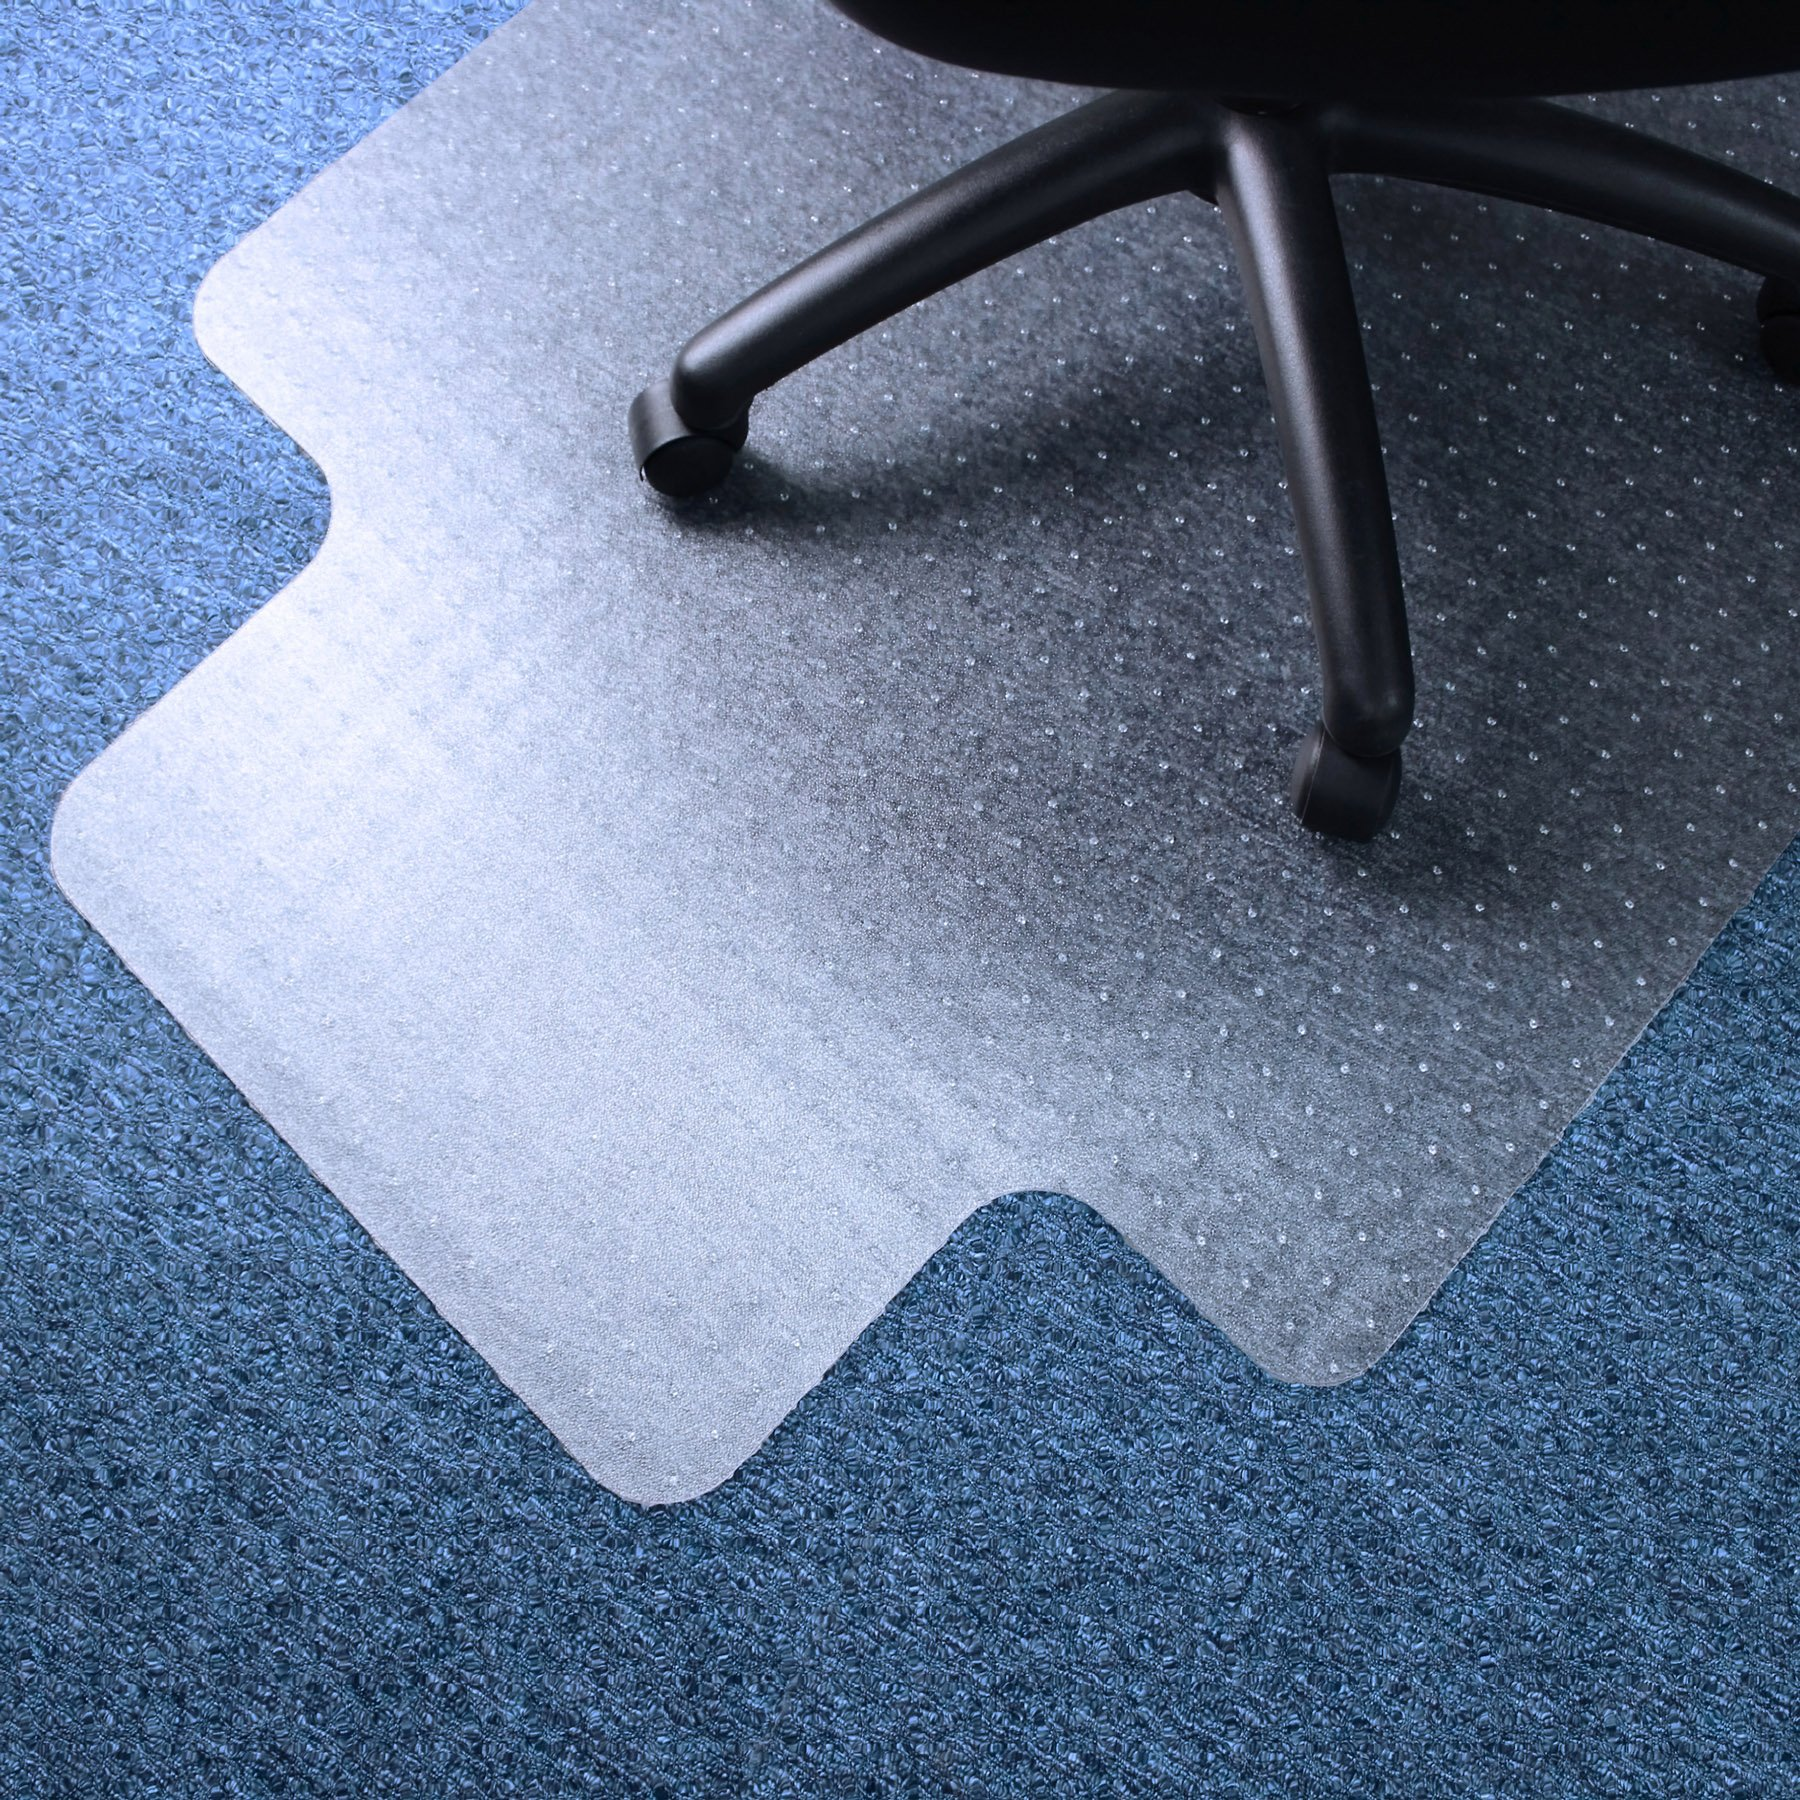 Marvelux 45'' x 53'' Vinyl (PVC) Lipped Chair Mat for Very Low Pile Carpets | Transparent Carpet Protector | Multiple Sizes